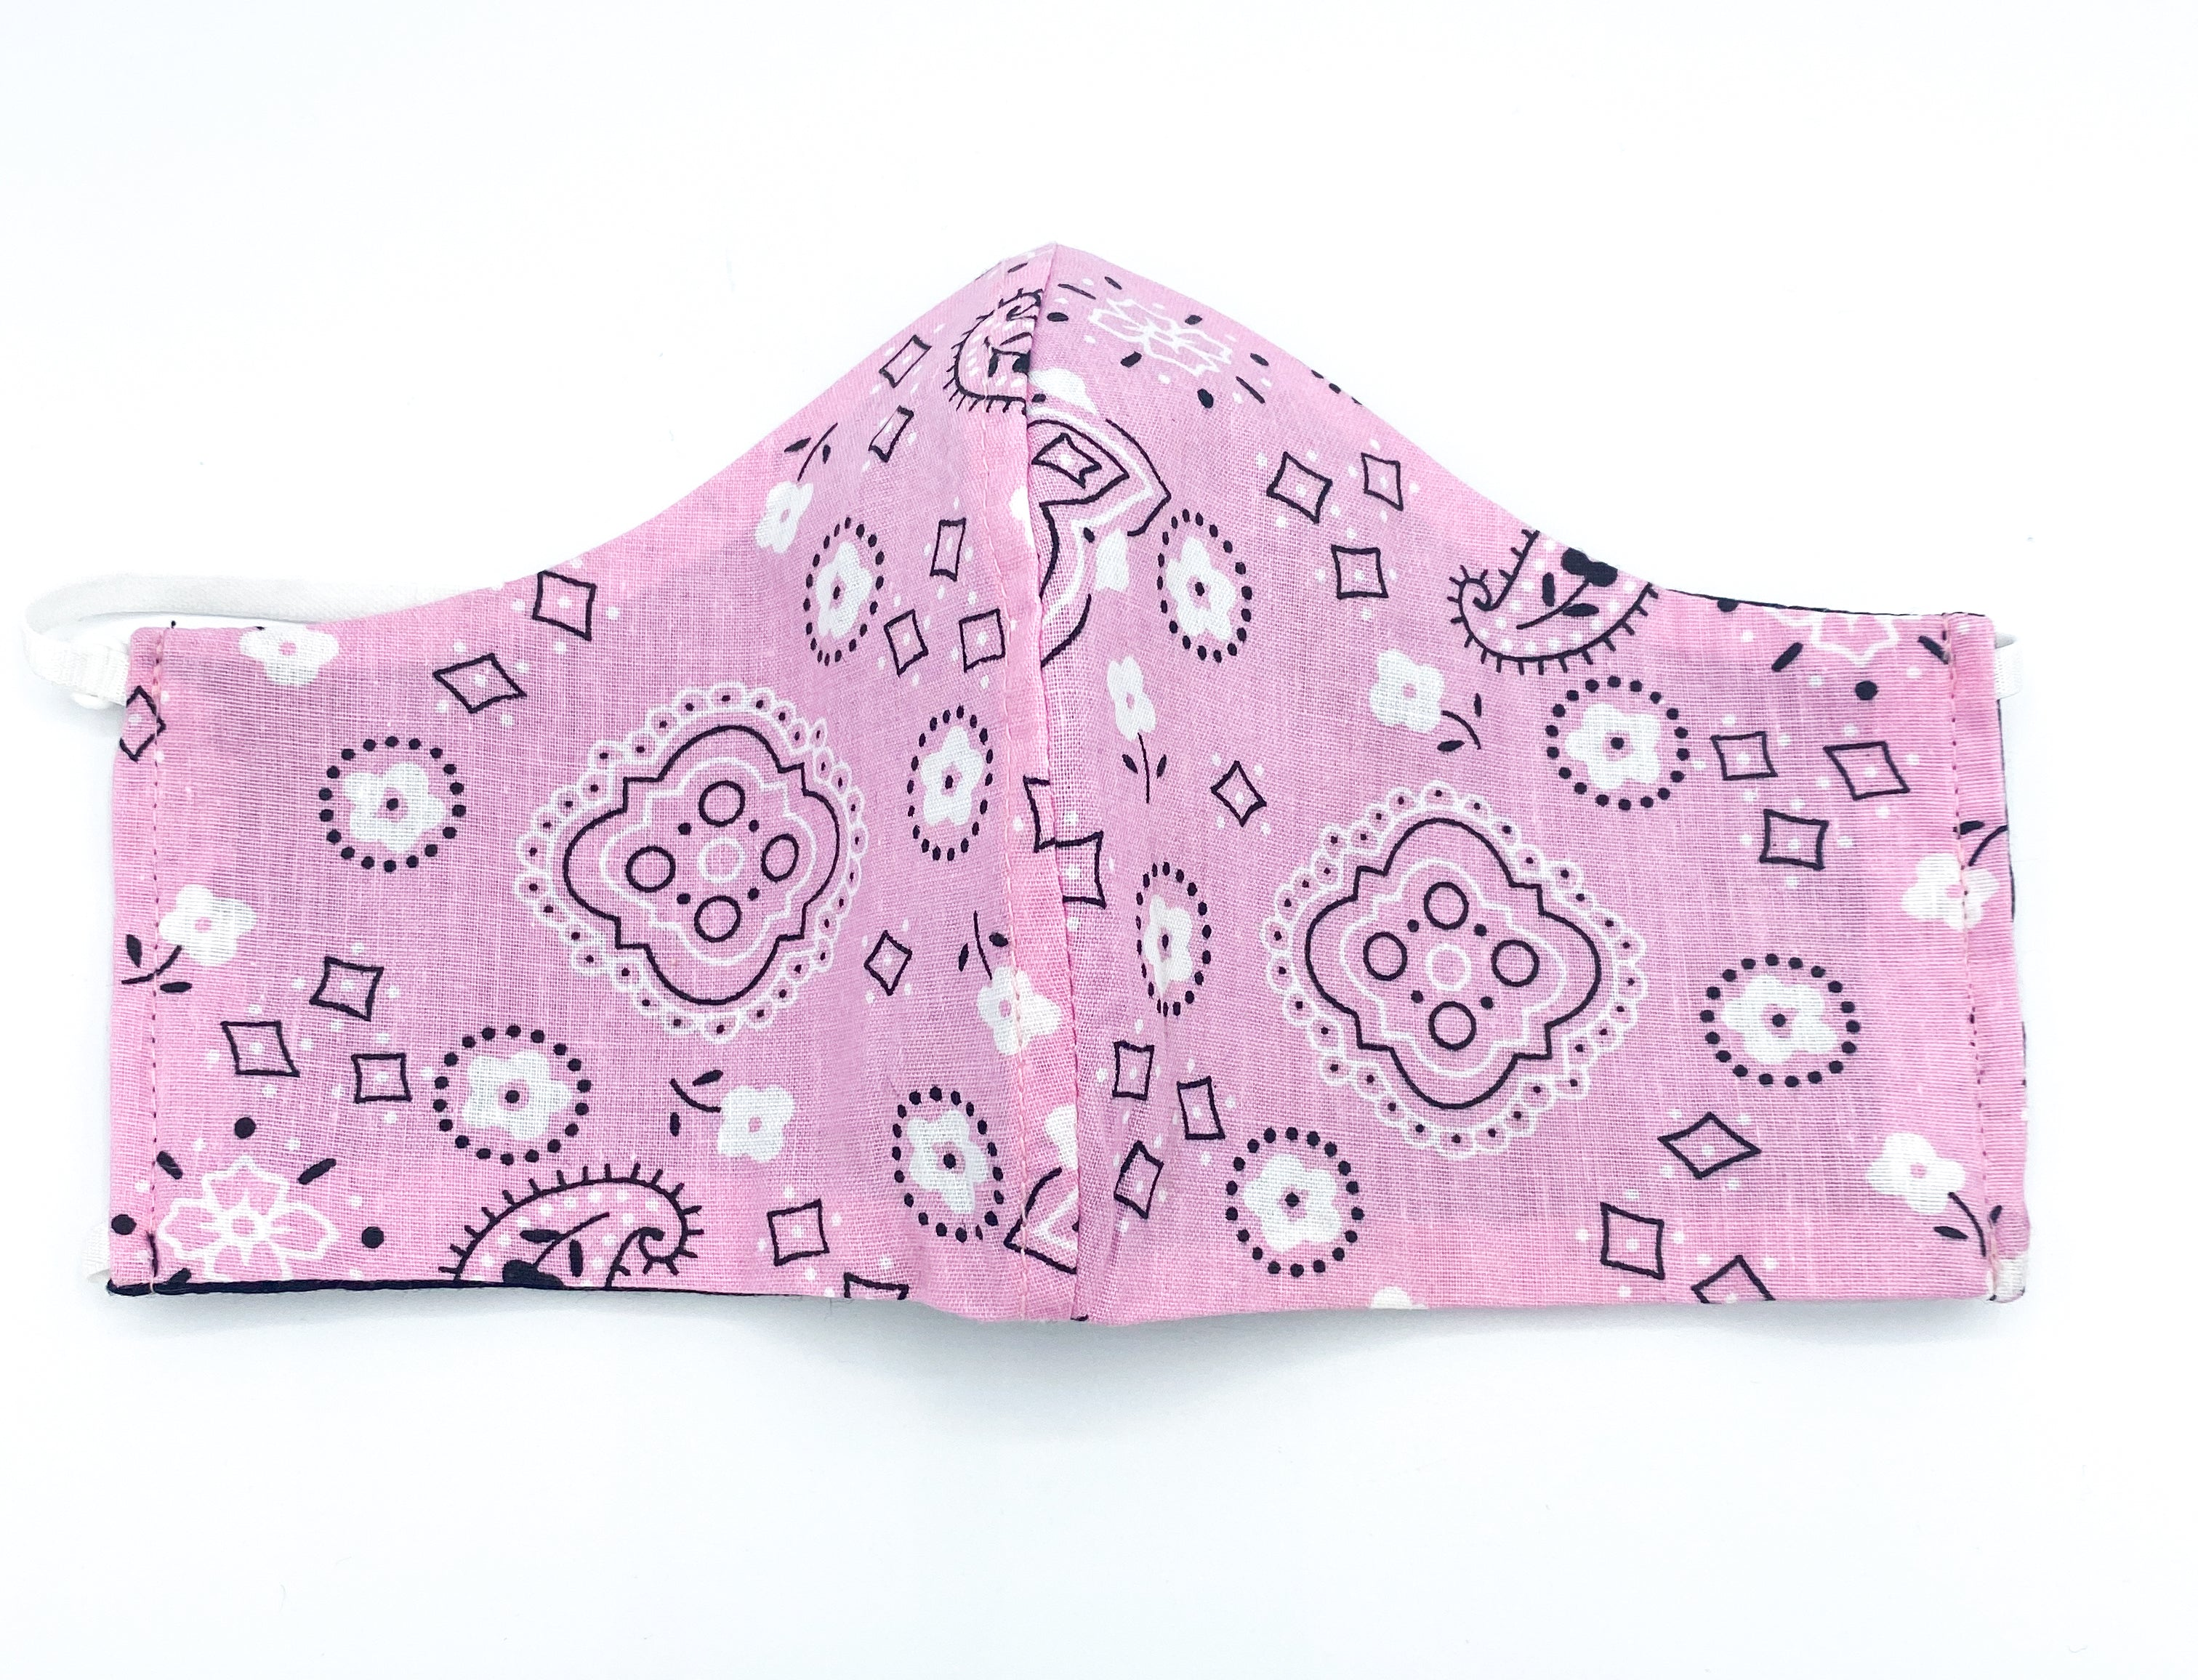 Reversible Pink Bandana - 2 Masks for the Price of 1! Pink and Black